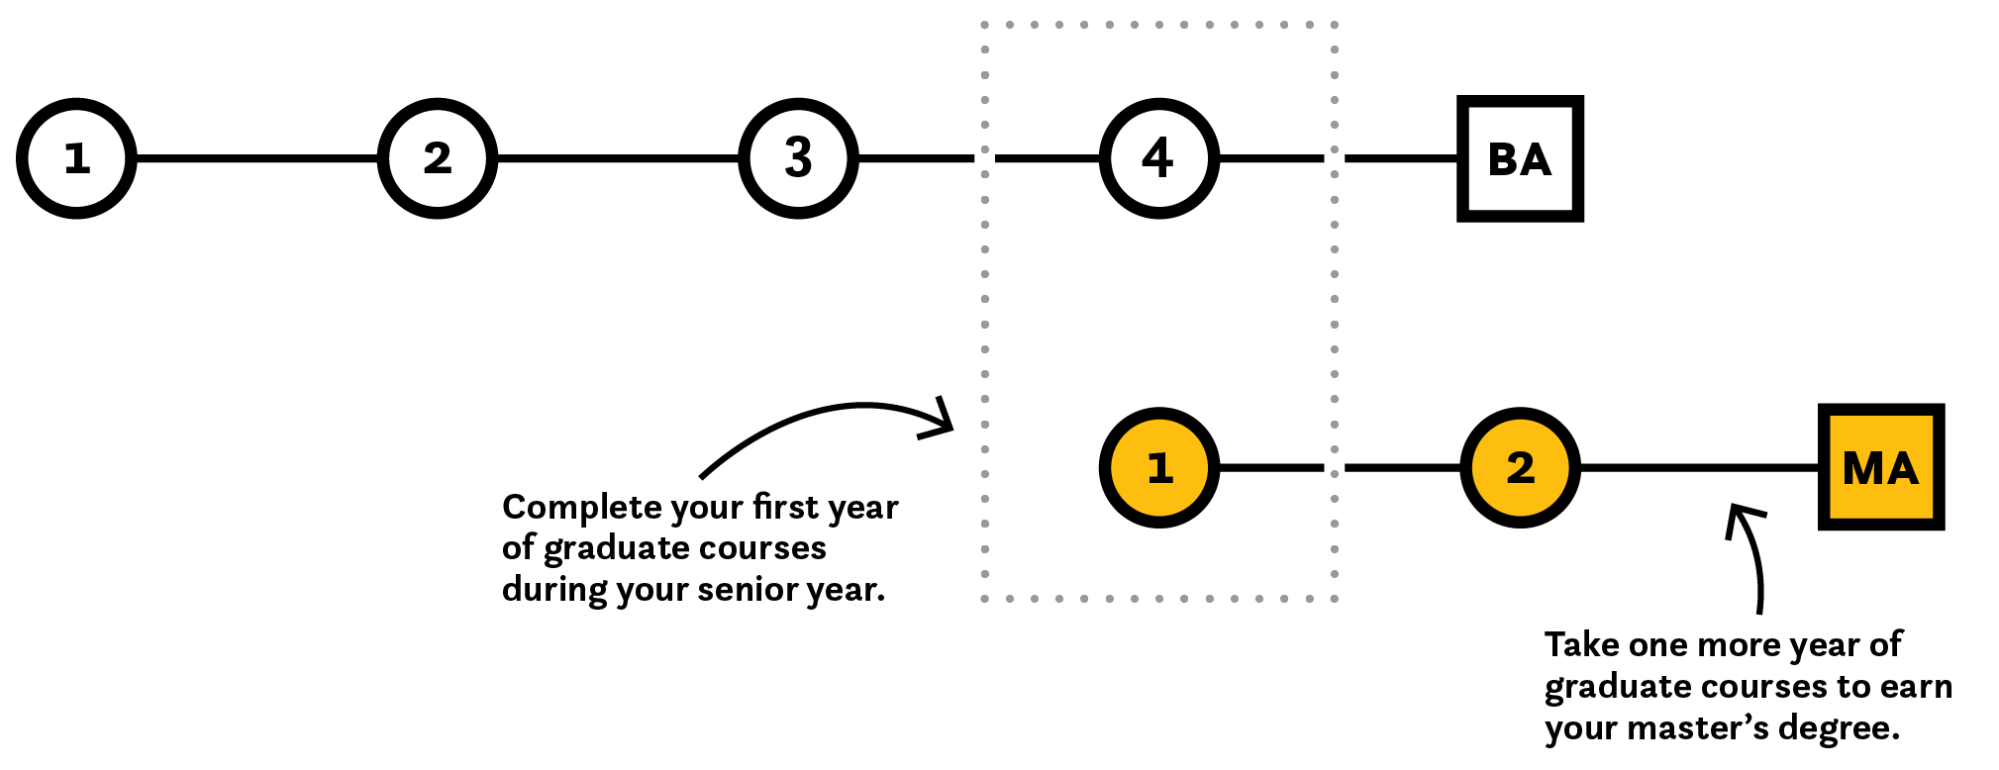 hight resolution of diagram that shows how progressive degree works in five years